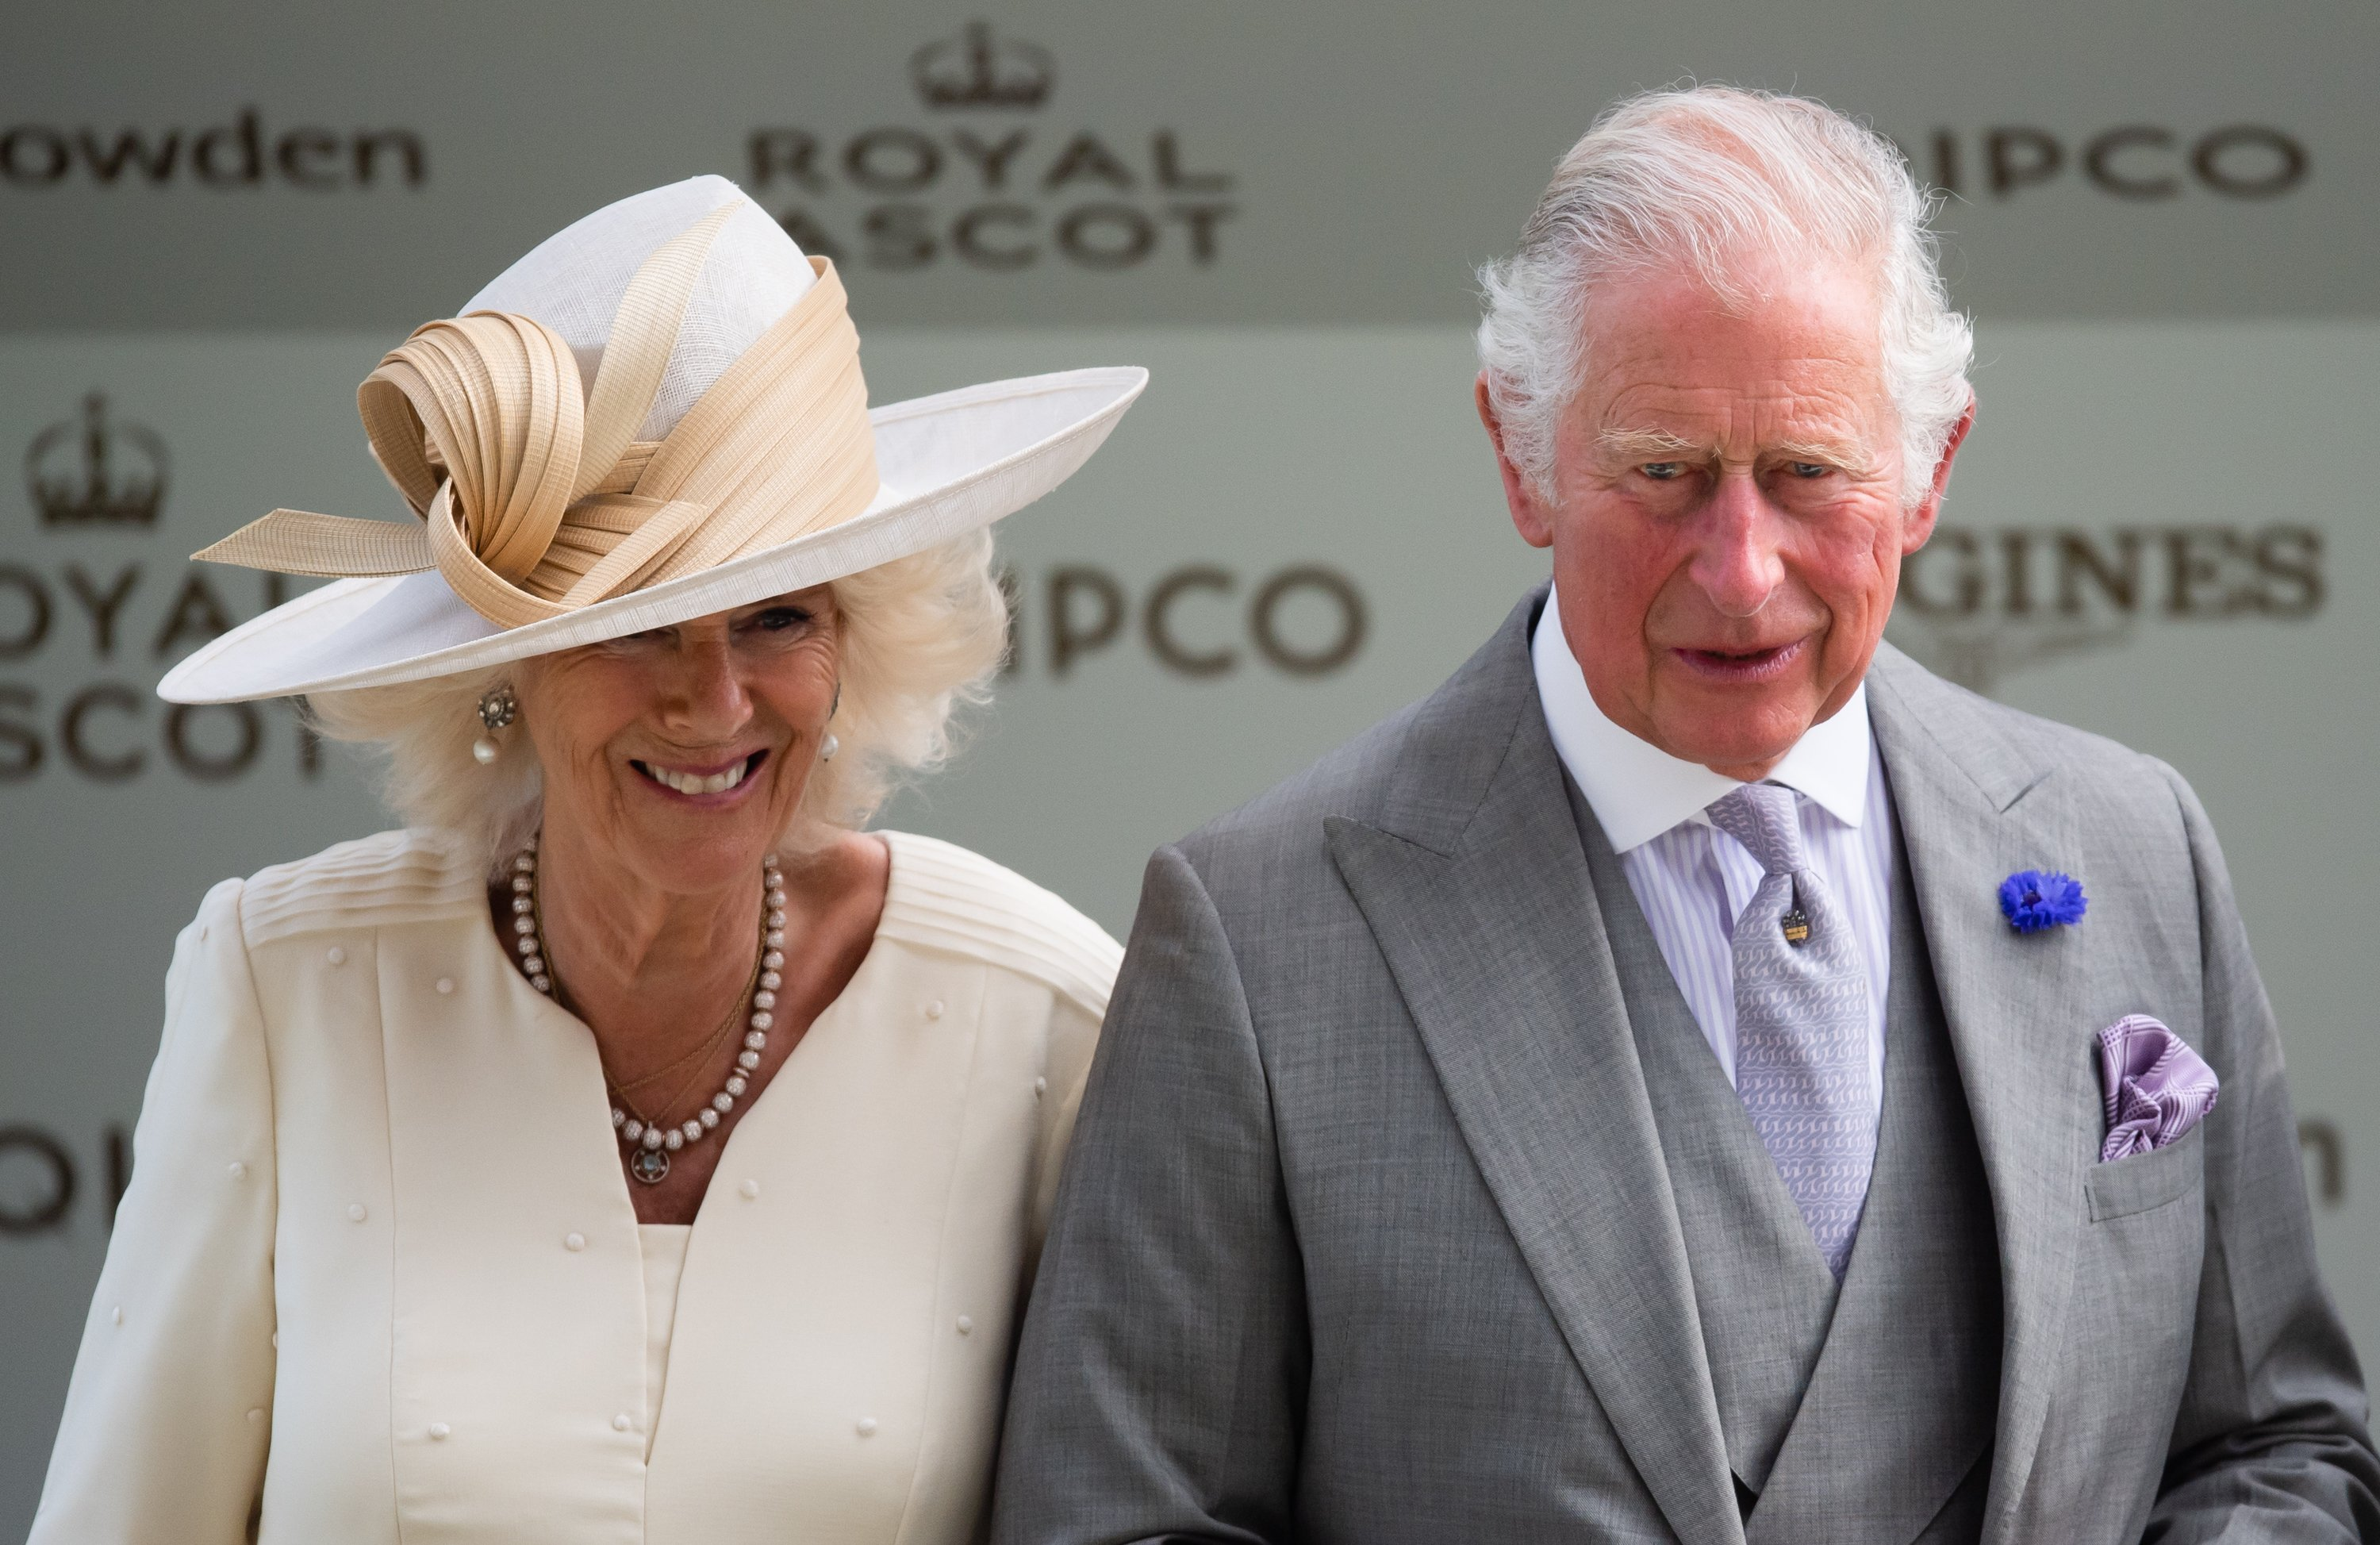 Camilla, Duchess of Cornwall and Prince Charles, Prince of Wales attend Royal Ascot 2021 at Ascot Racecourse on June 16, 2021 in Ascot, England | Photo: Getty Images